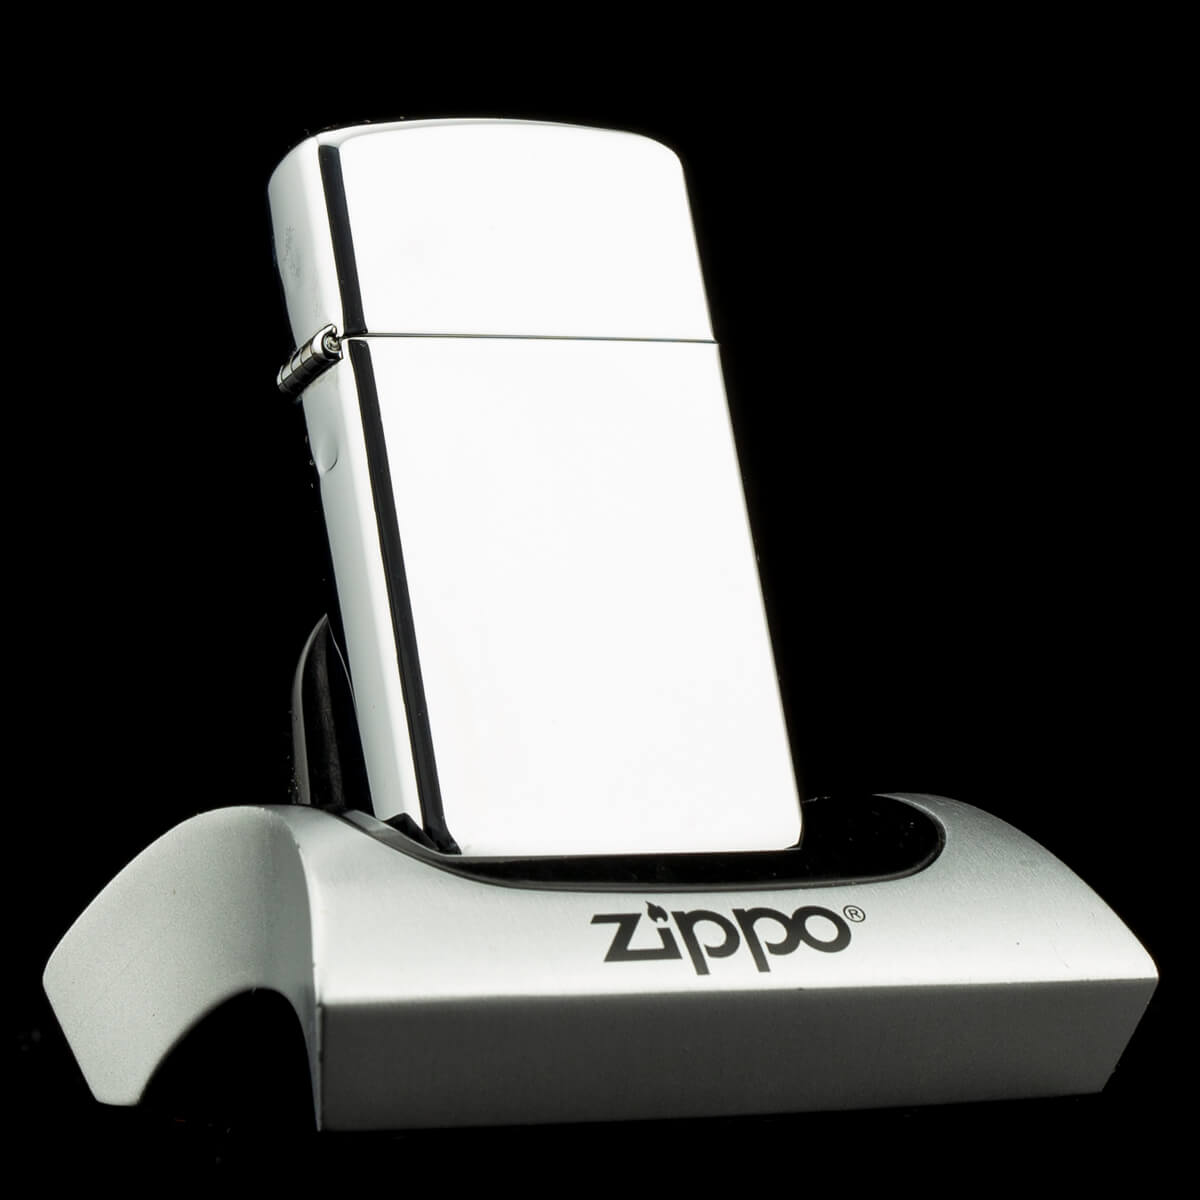 bat-lua-zippo-slim-high-polished-chrome-xv-1999-tron-bong